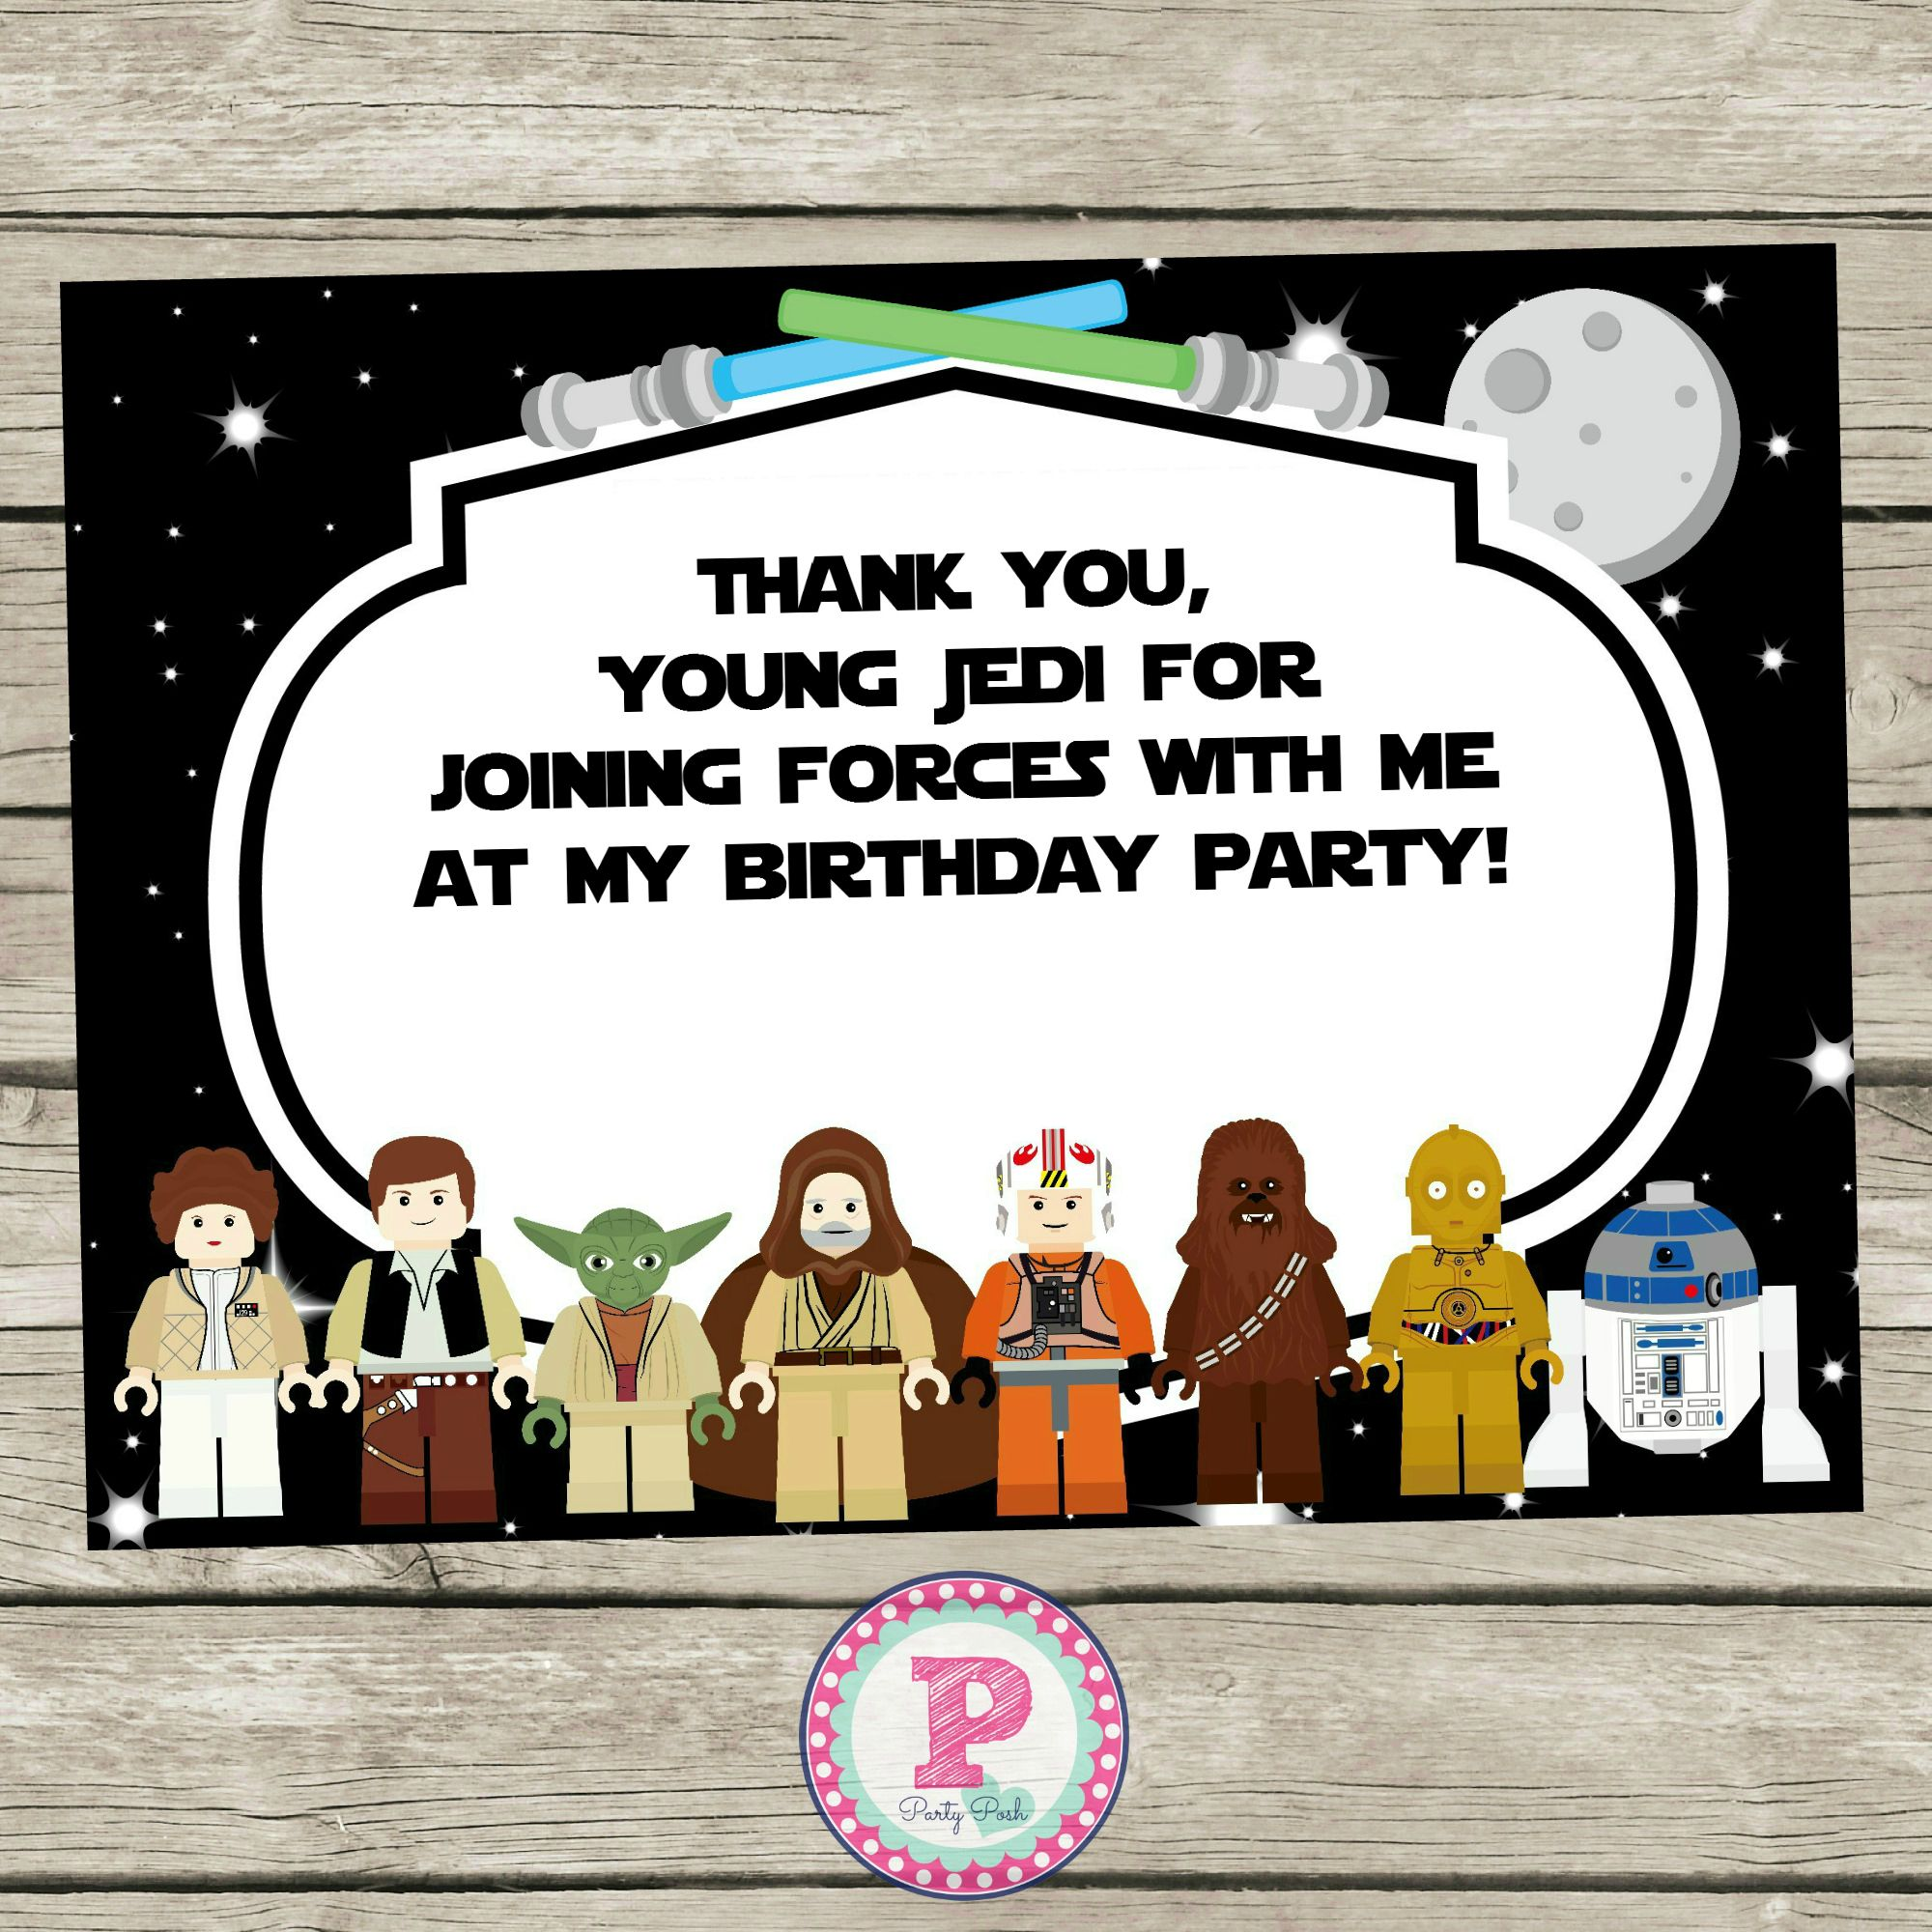 lego star wars birthday party thank you cards. thank you young, Einladungen